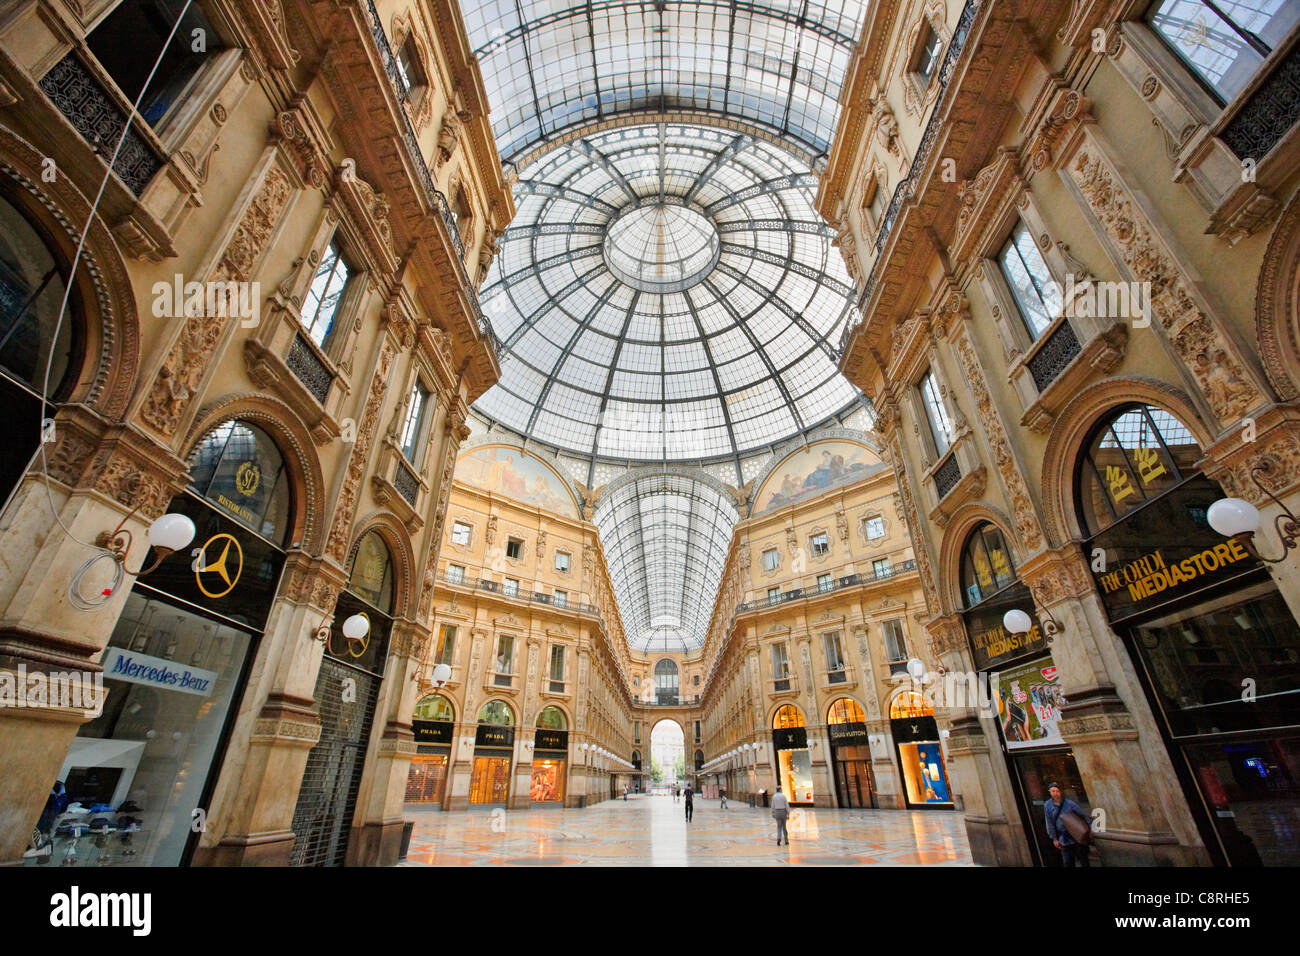 Interior and transparent roof of Vittorio Emanuele II Gallery. Milan, Italy. - Stock Image